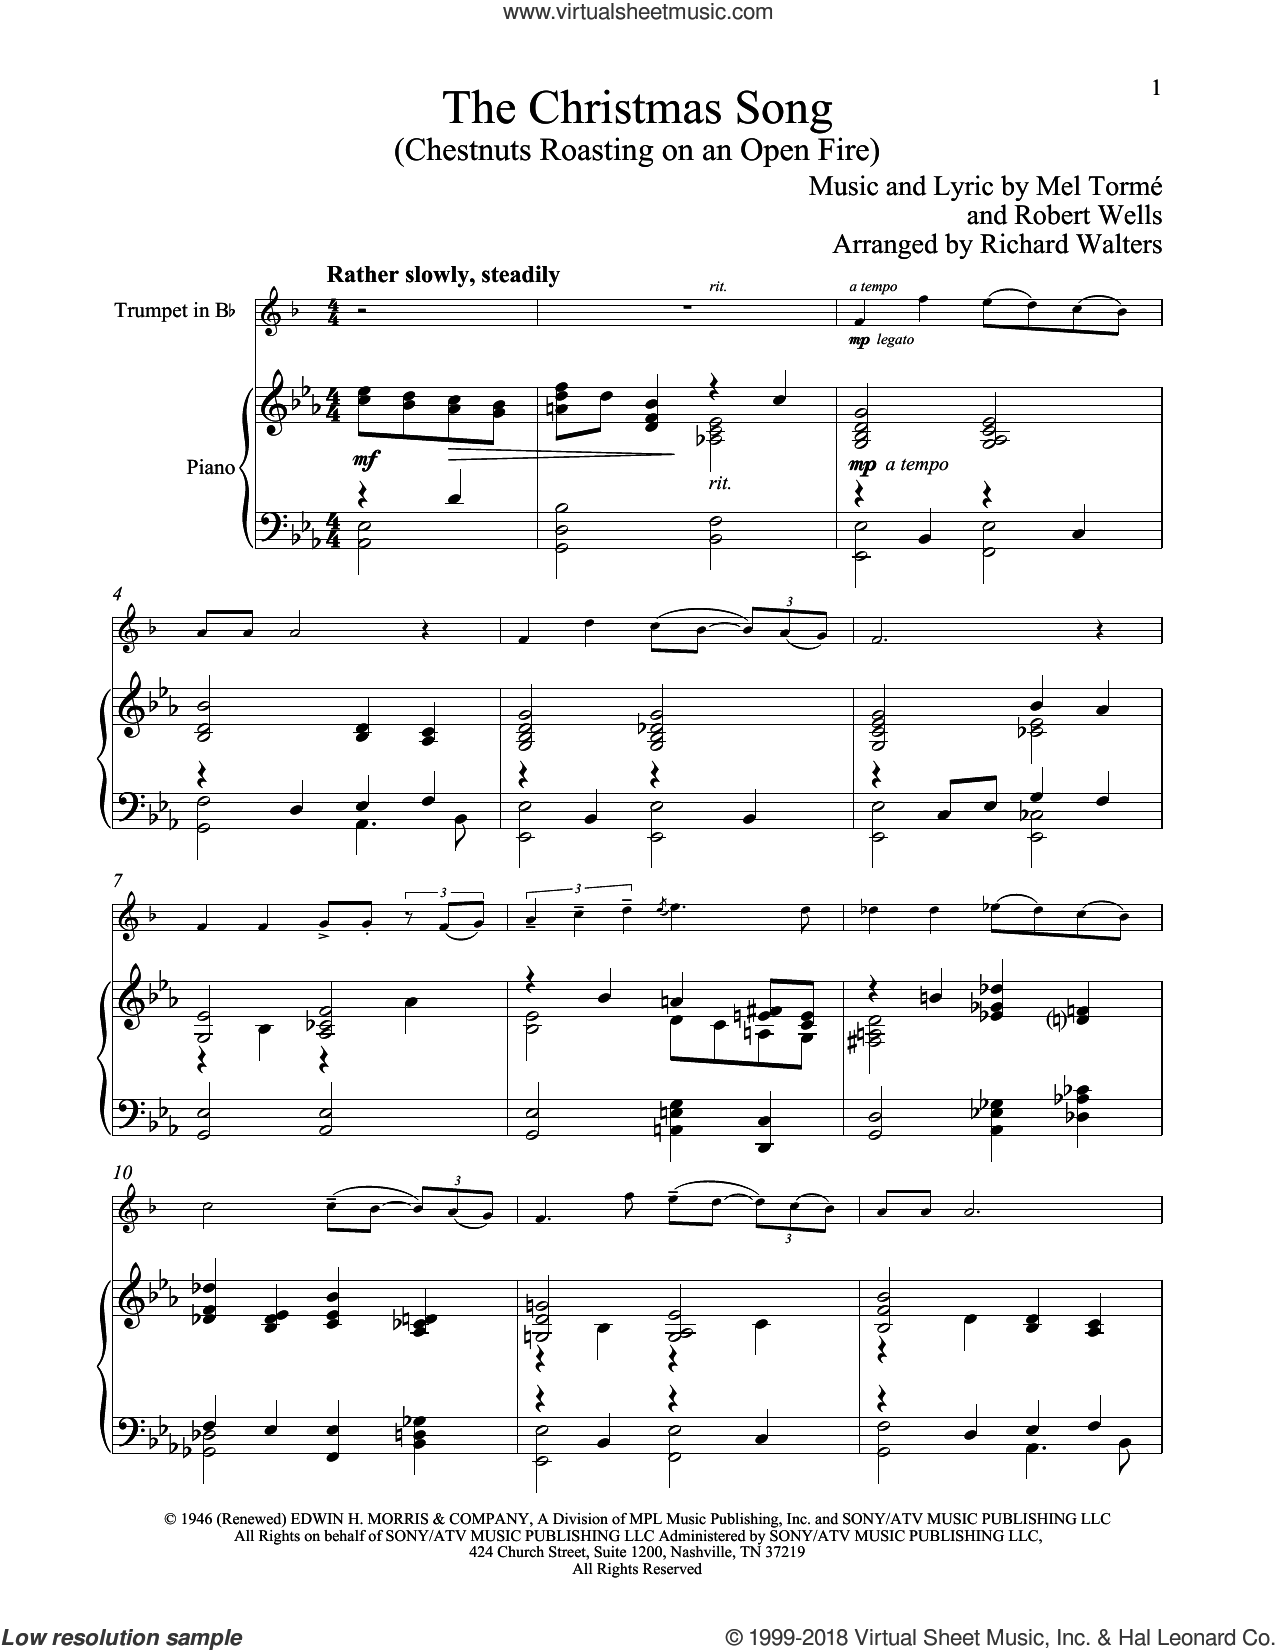 The Christmas Song (Chestnuts Roasting On An Open Fire) sheet music for trumpet and piano by Mel Torme and Robert Wells, classical score, intermediate skill level